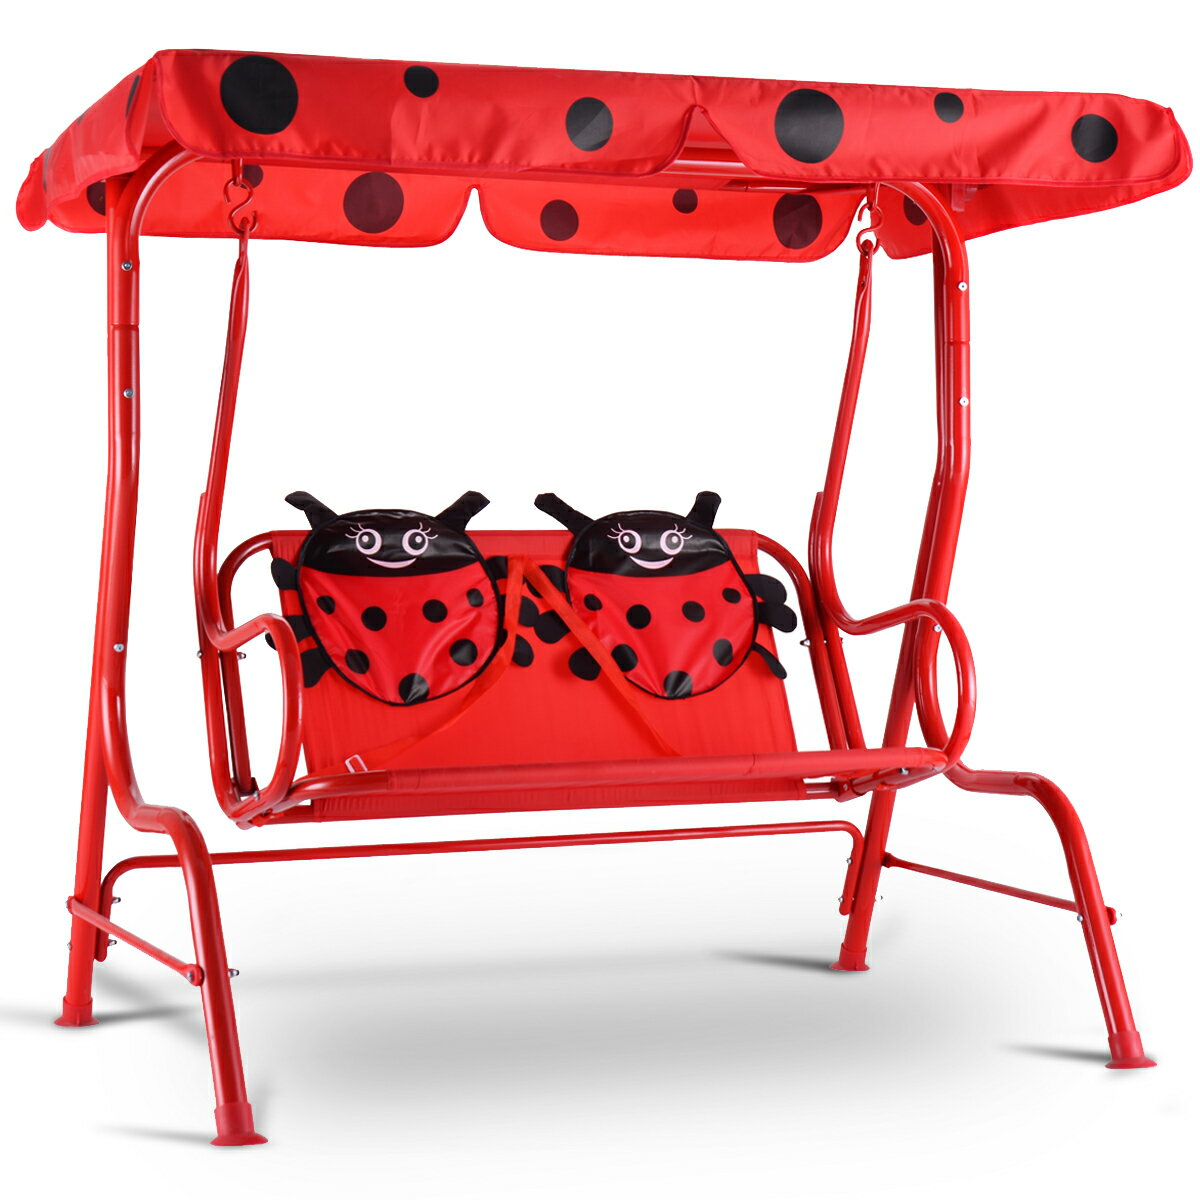 Costway Kids Patio Swing Chair Children Porch Bench Canopy 2 Person Yard  Furniture red 0 - Costway: Costway Kids Patio Swing Chair Children Porch Bench Canopy